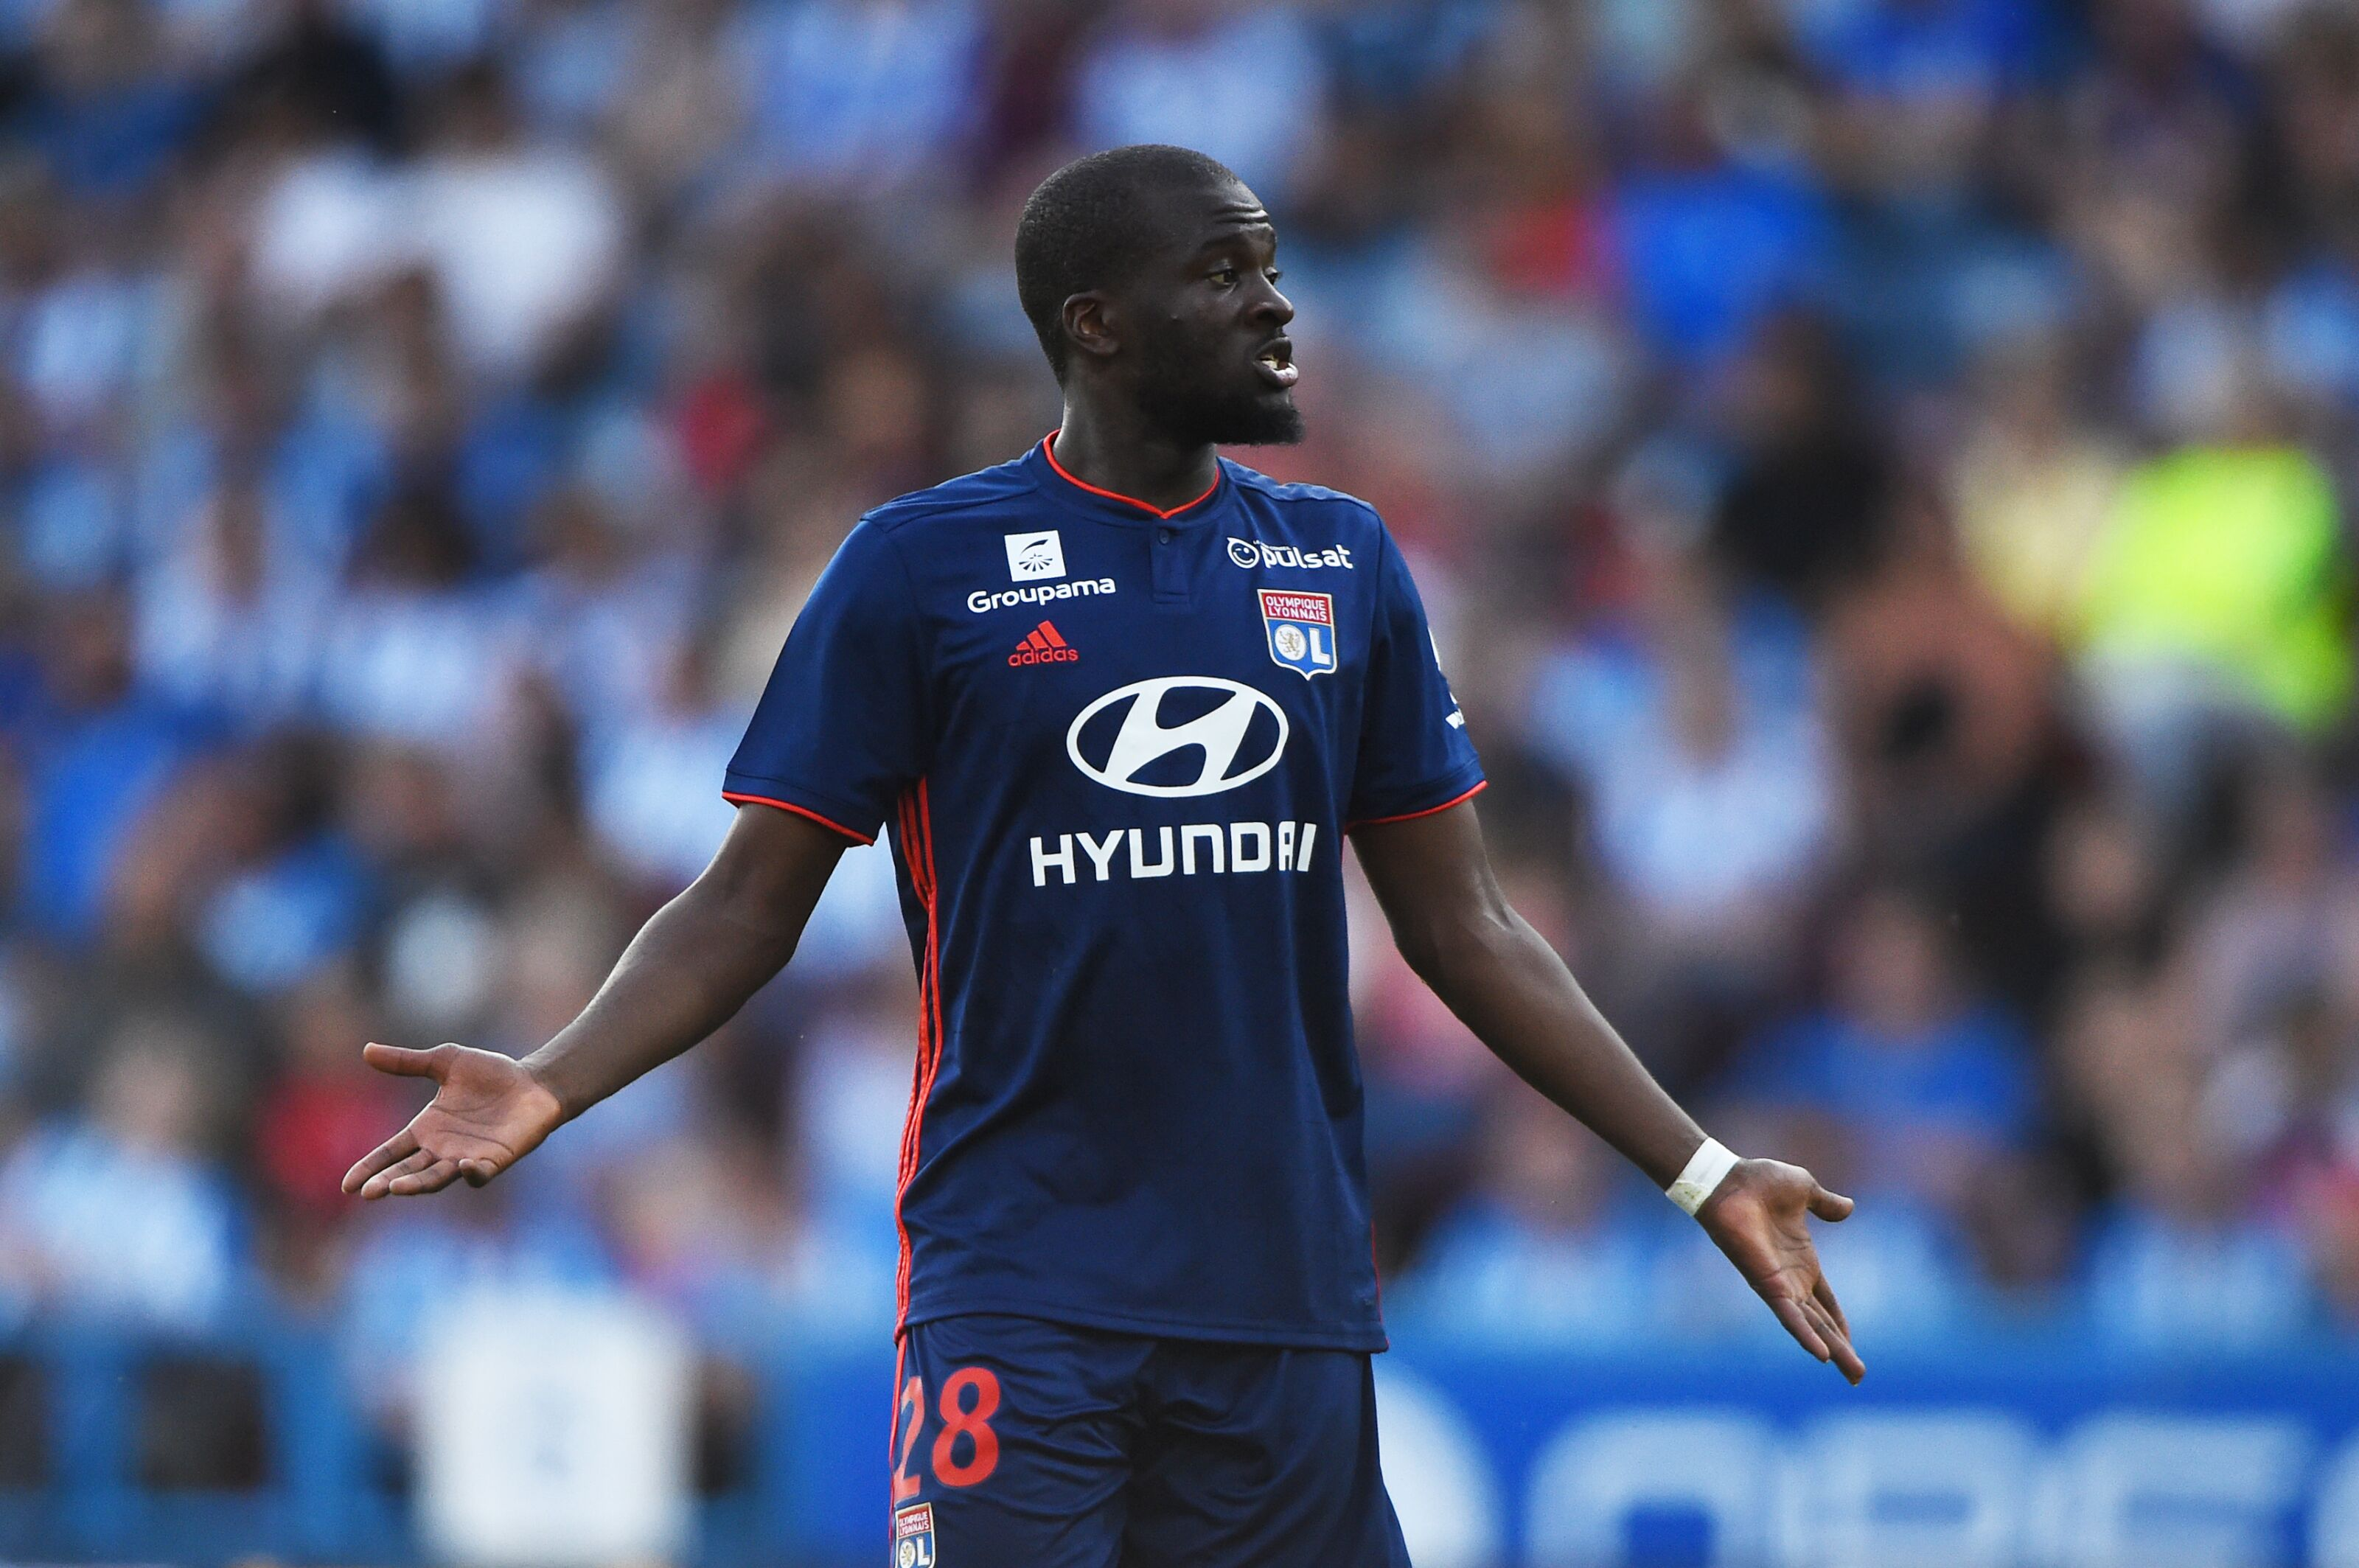 N'Dombele to Spurs would be an unusual but monumental transfer